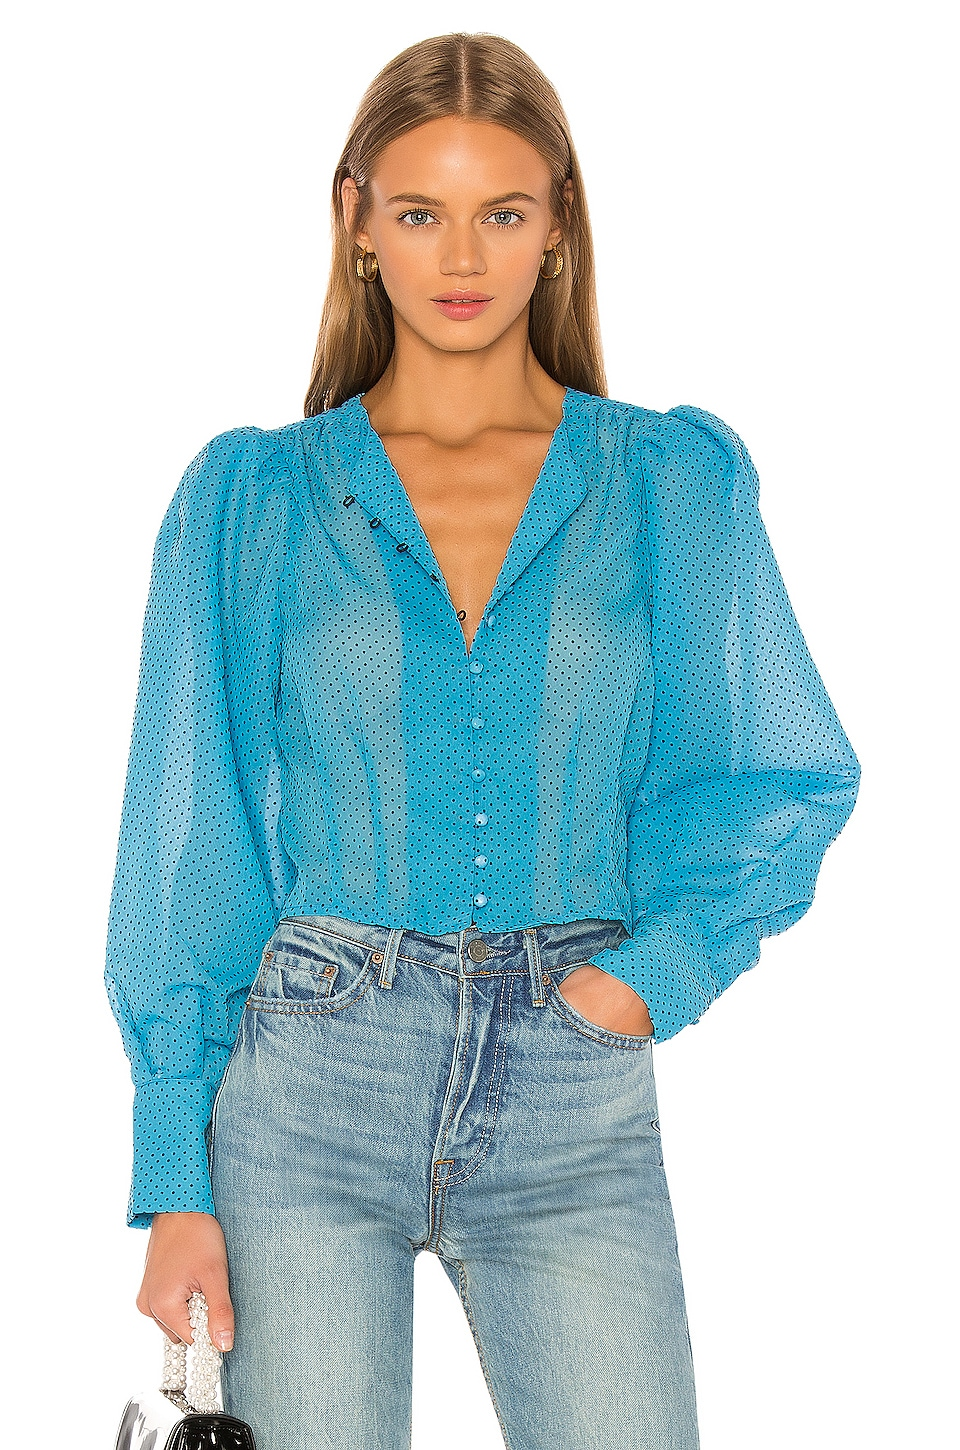 LPA Salma Top in Cerulean Blue